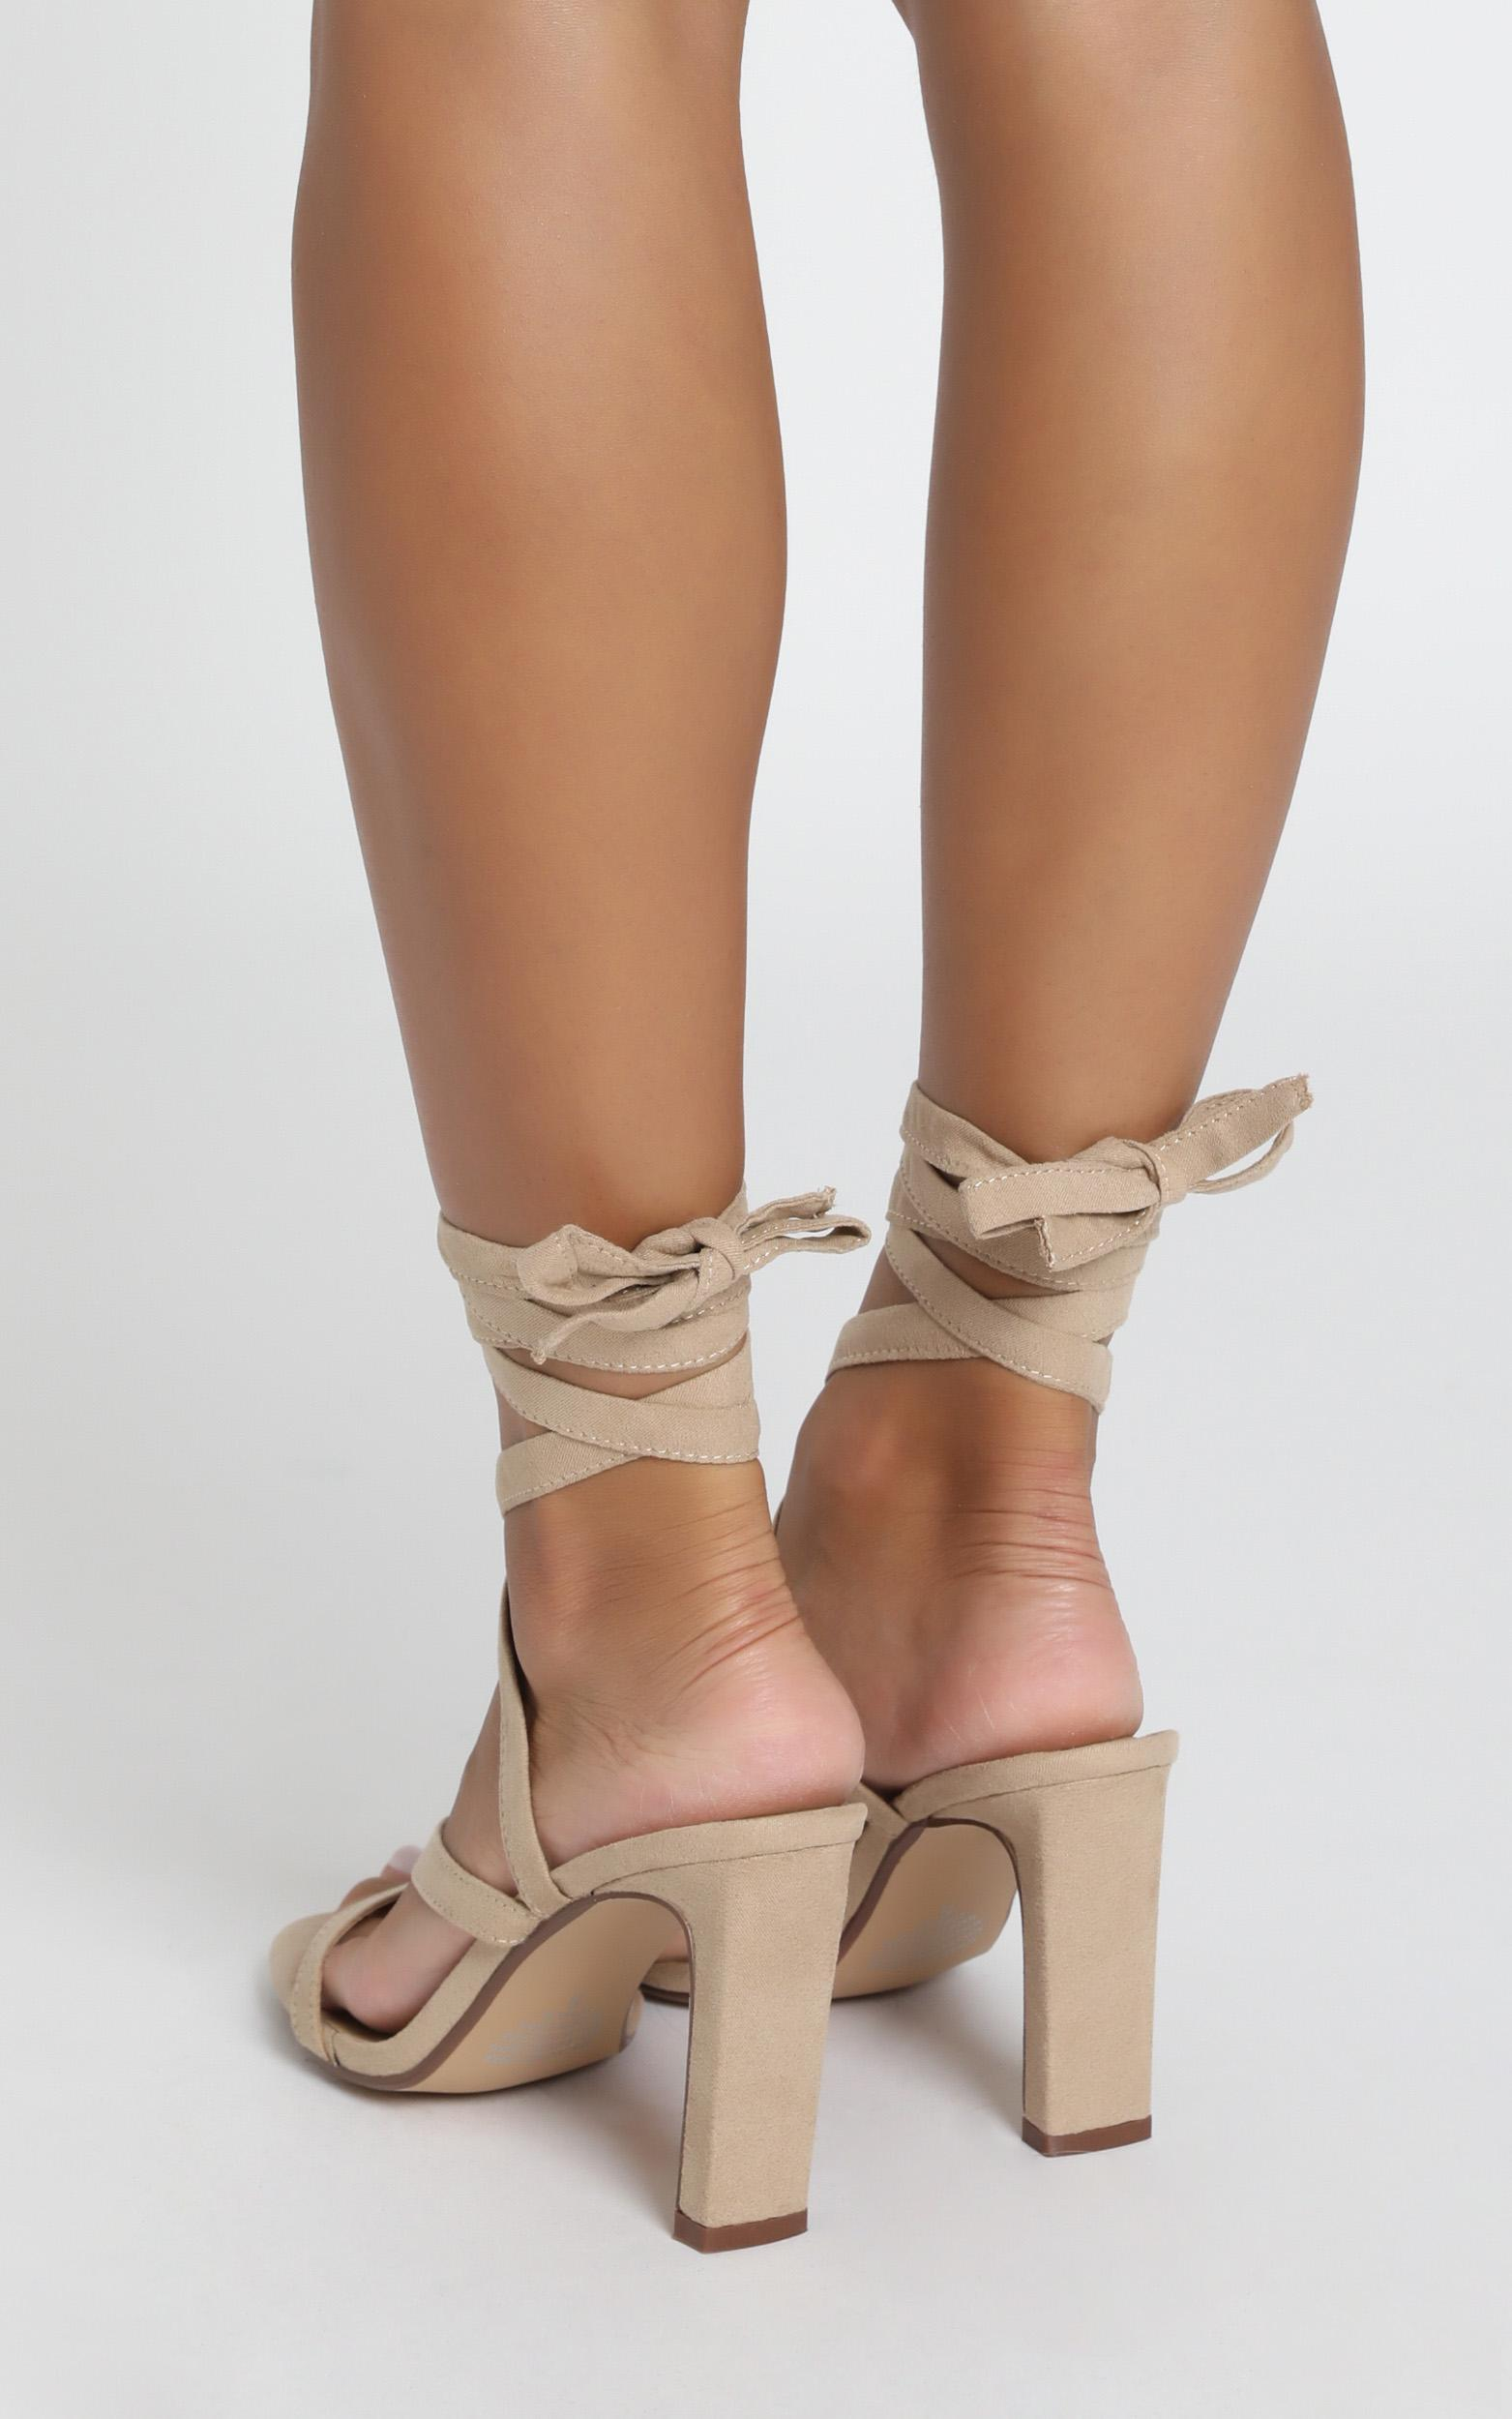 Therapy - Lorelei Heels in cashew micro - 10, Beige, hi-res image number null